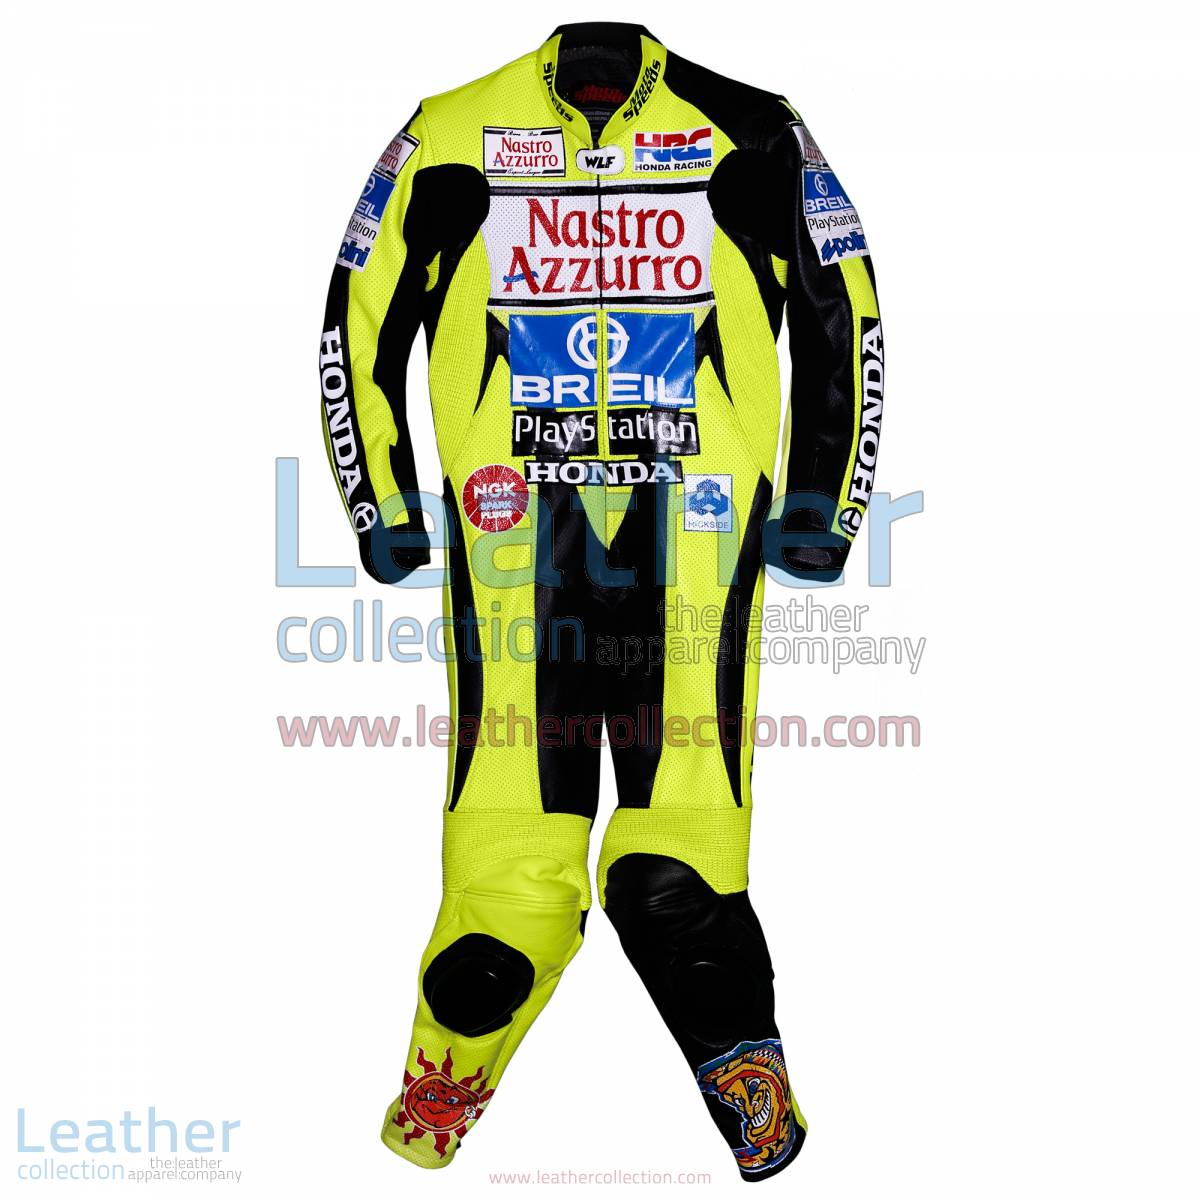 X-MEN Motorbike Leather Racing Pants – Leather Pant